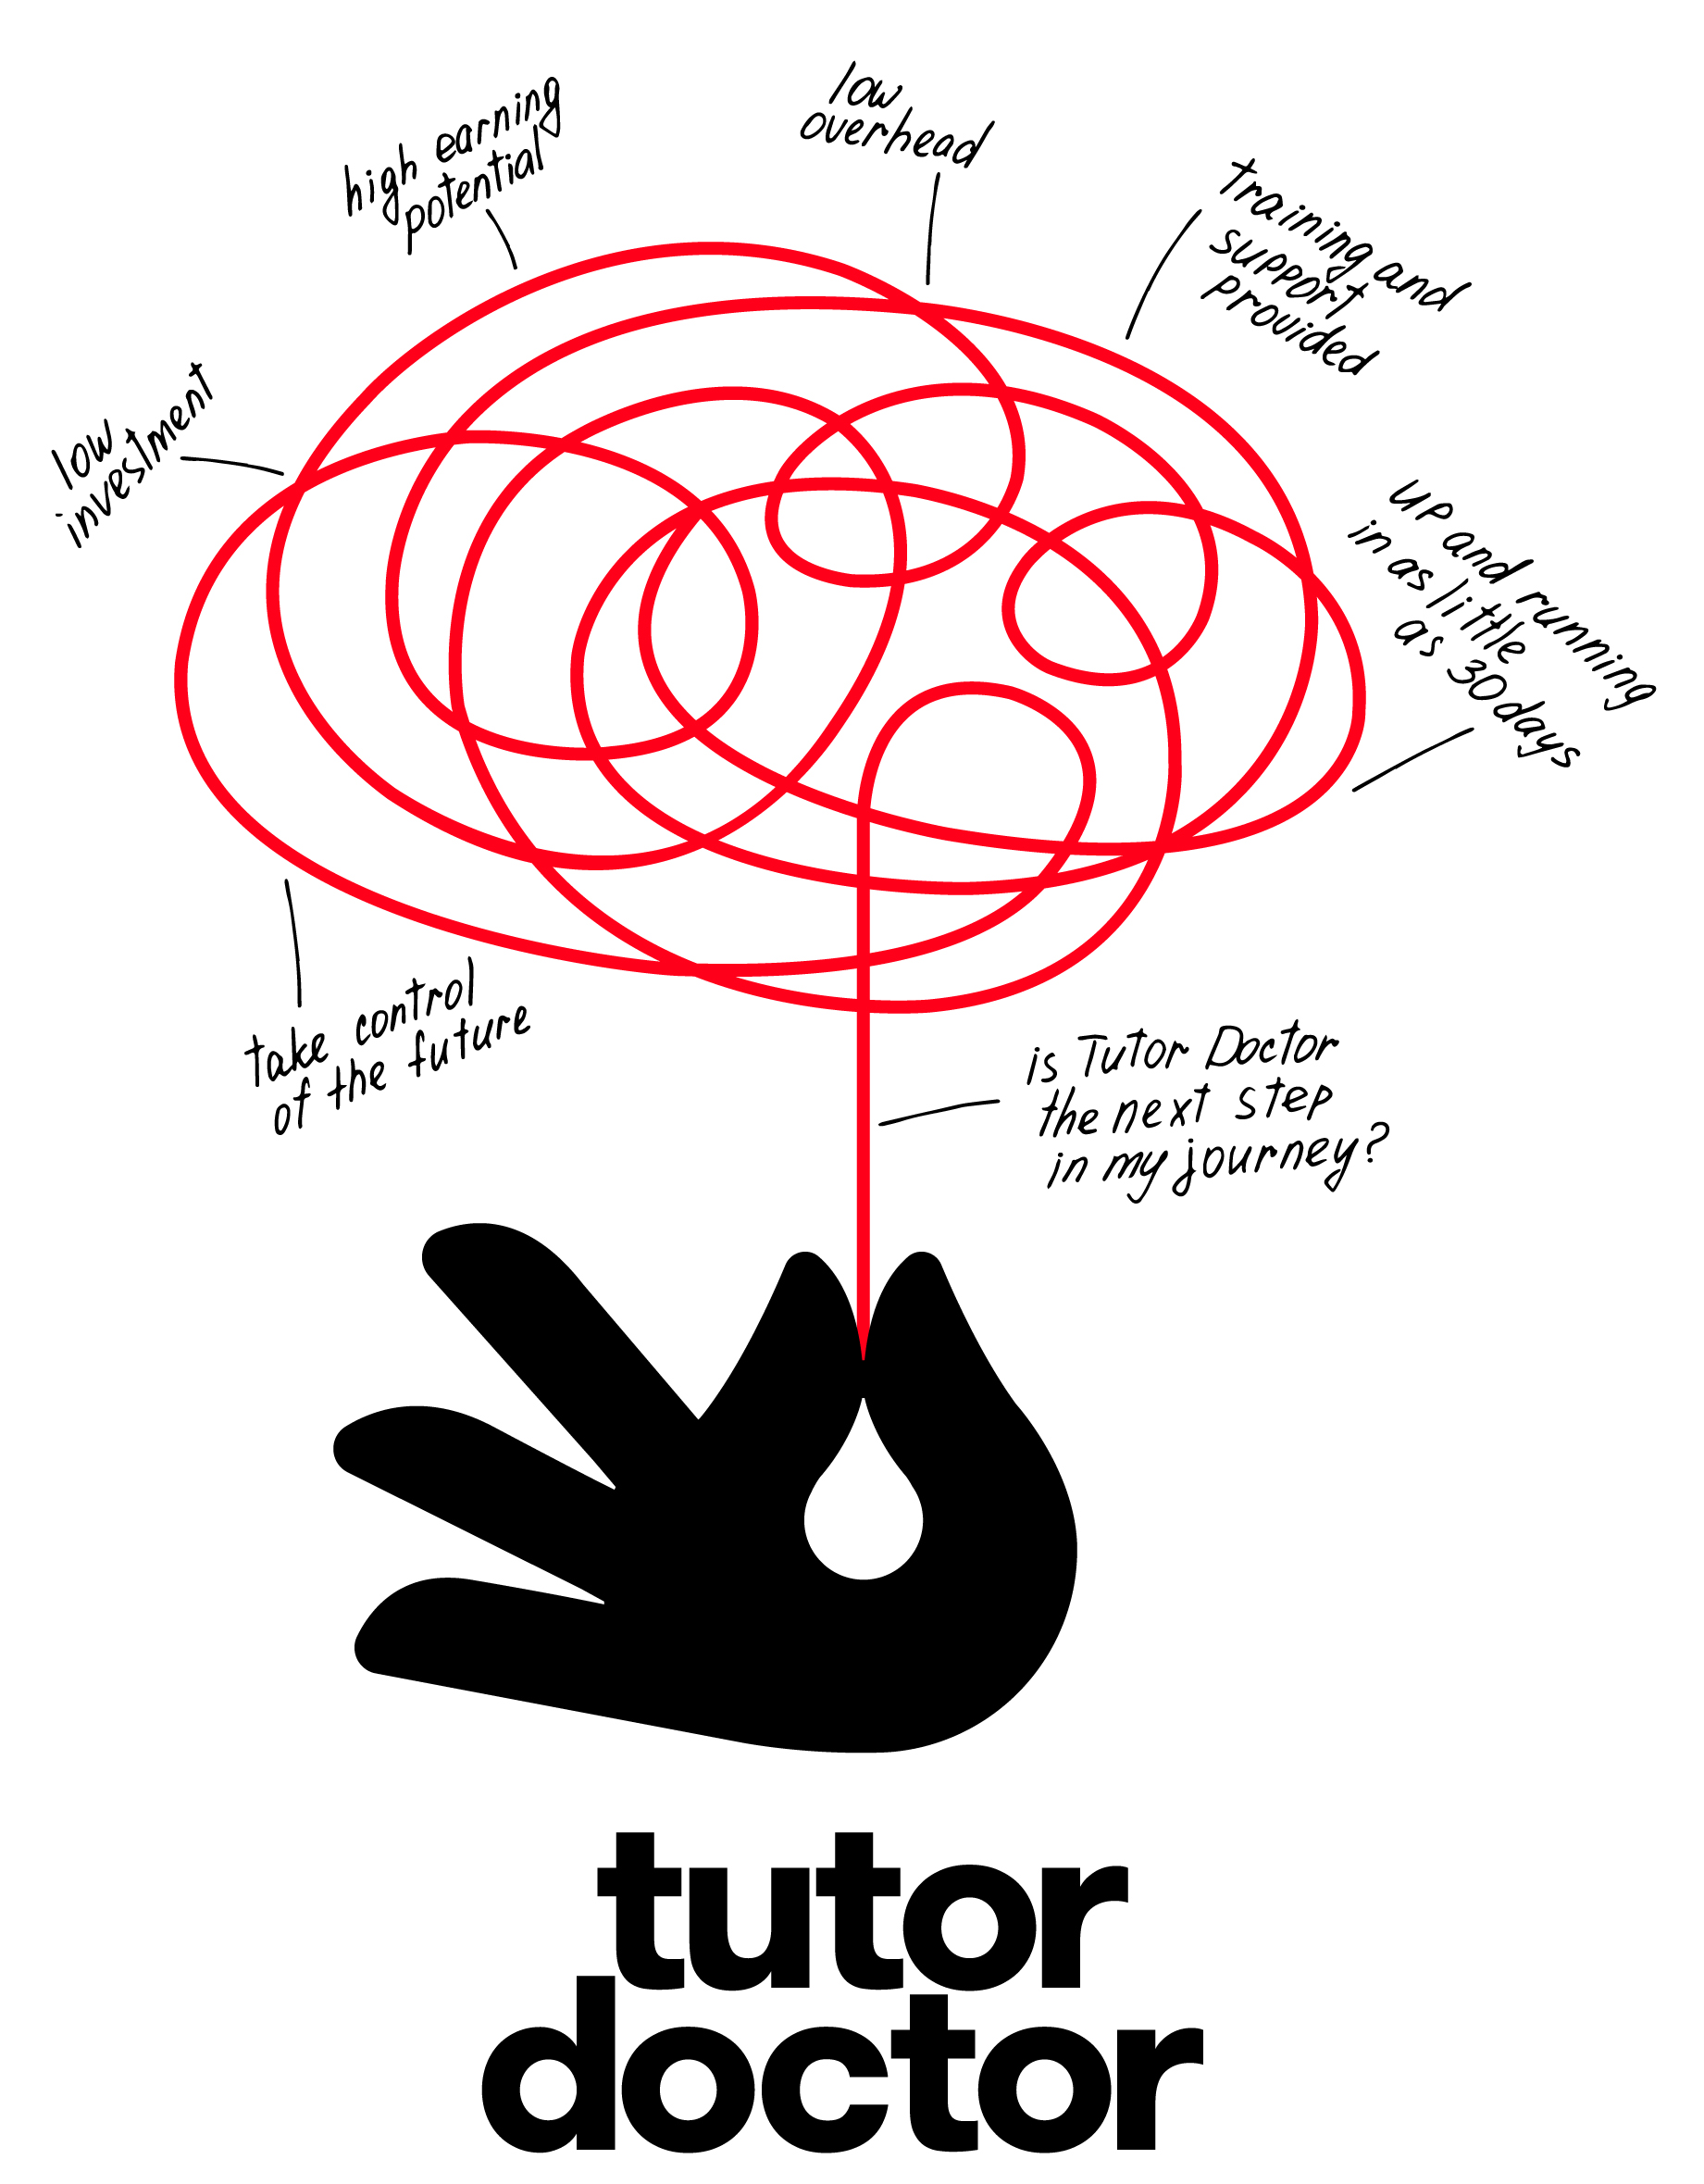 Tutor Doctor Franchise | One-to-One Education Business